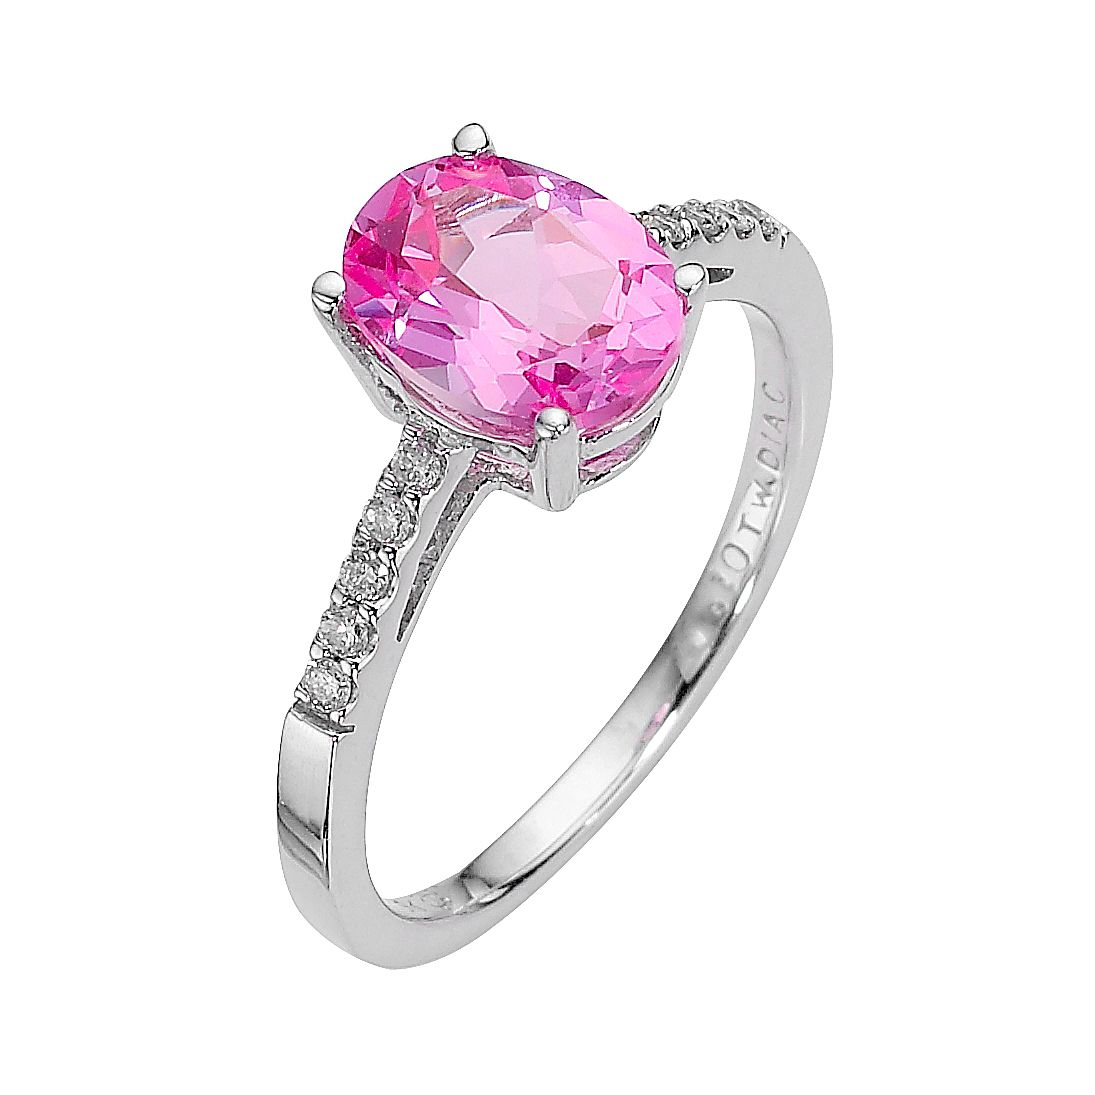 prouctdetail buy pear approximately sapphire pink shape carat